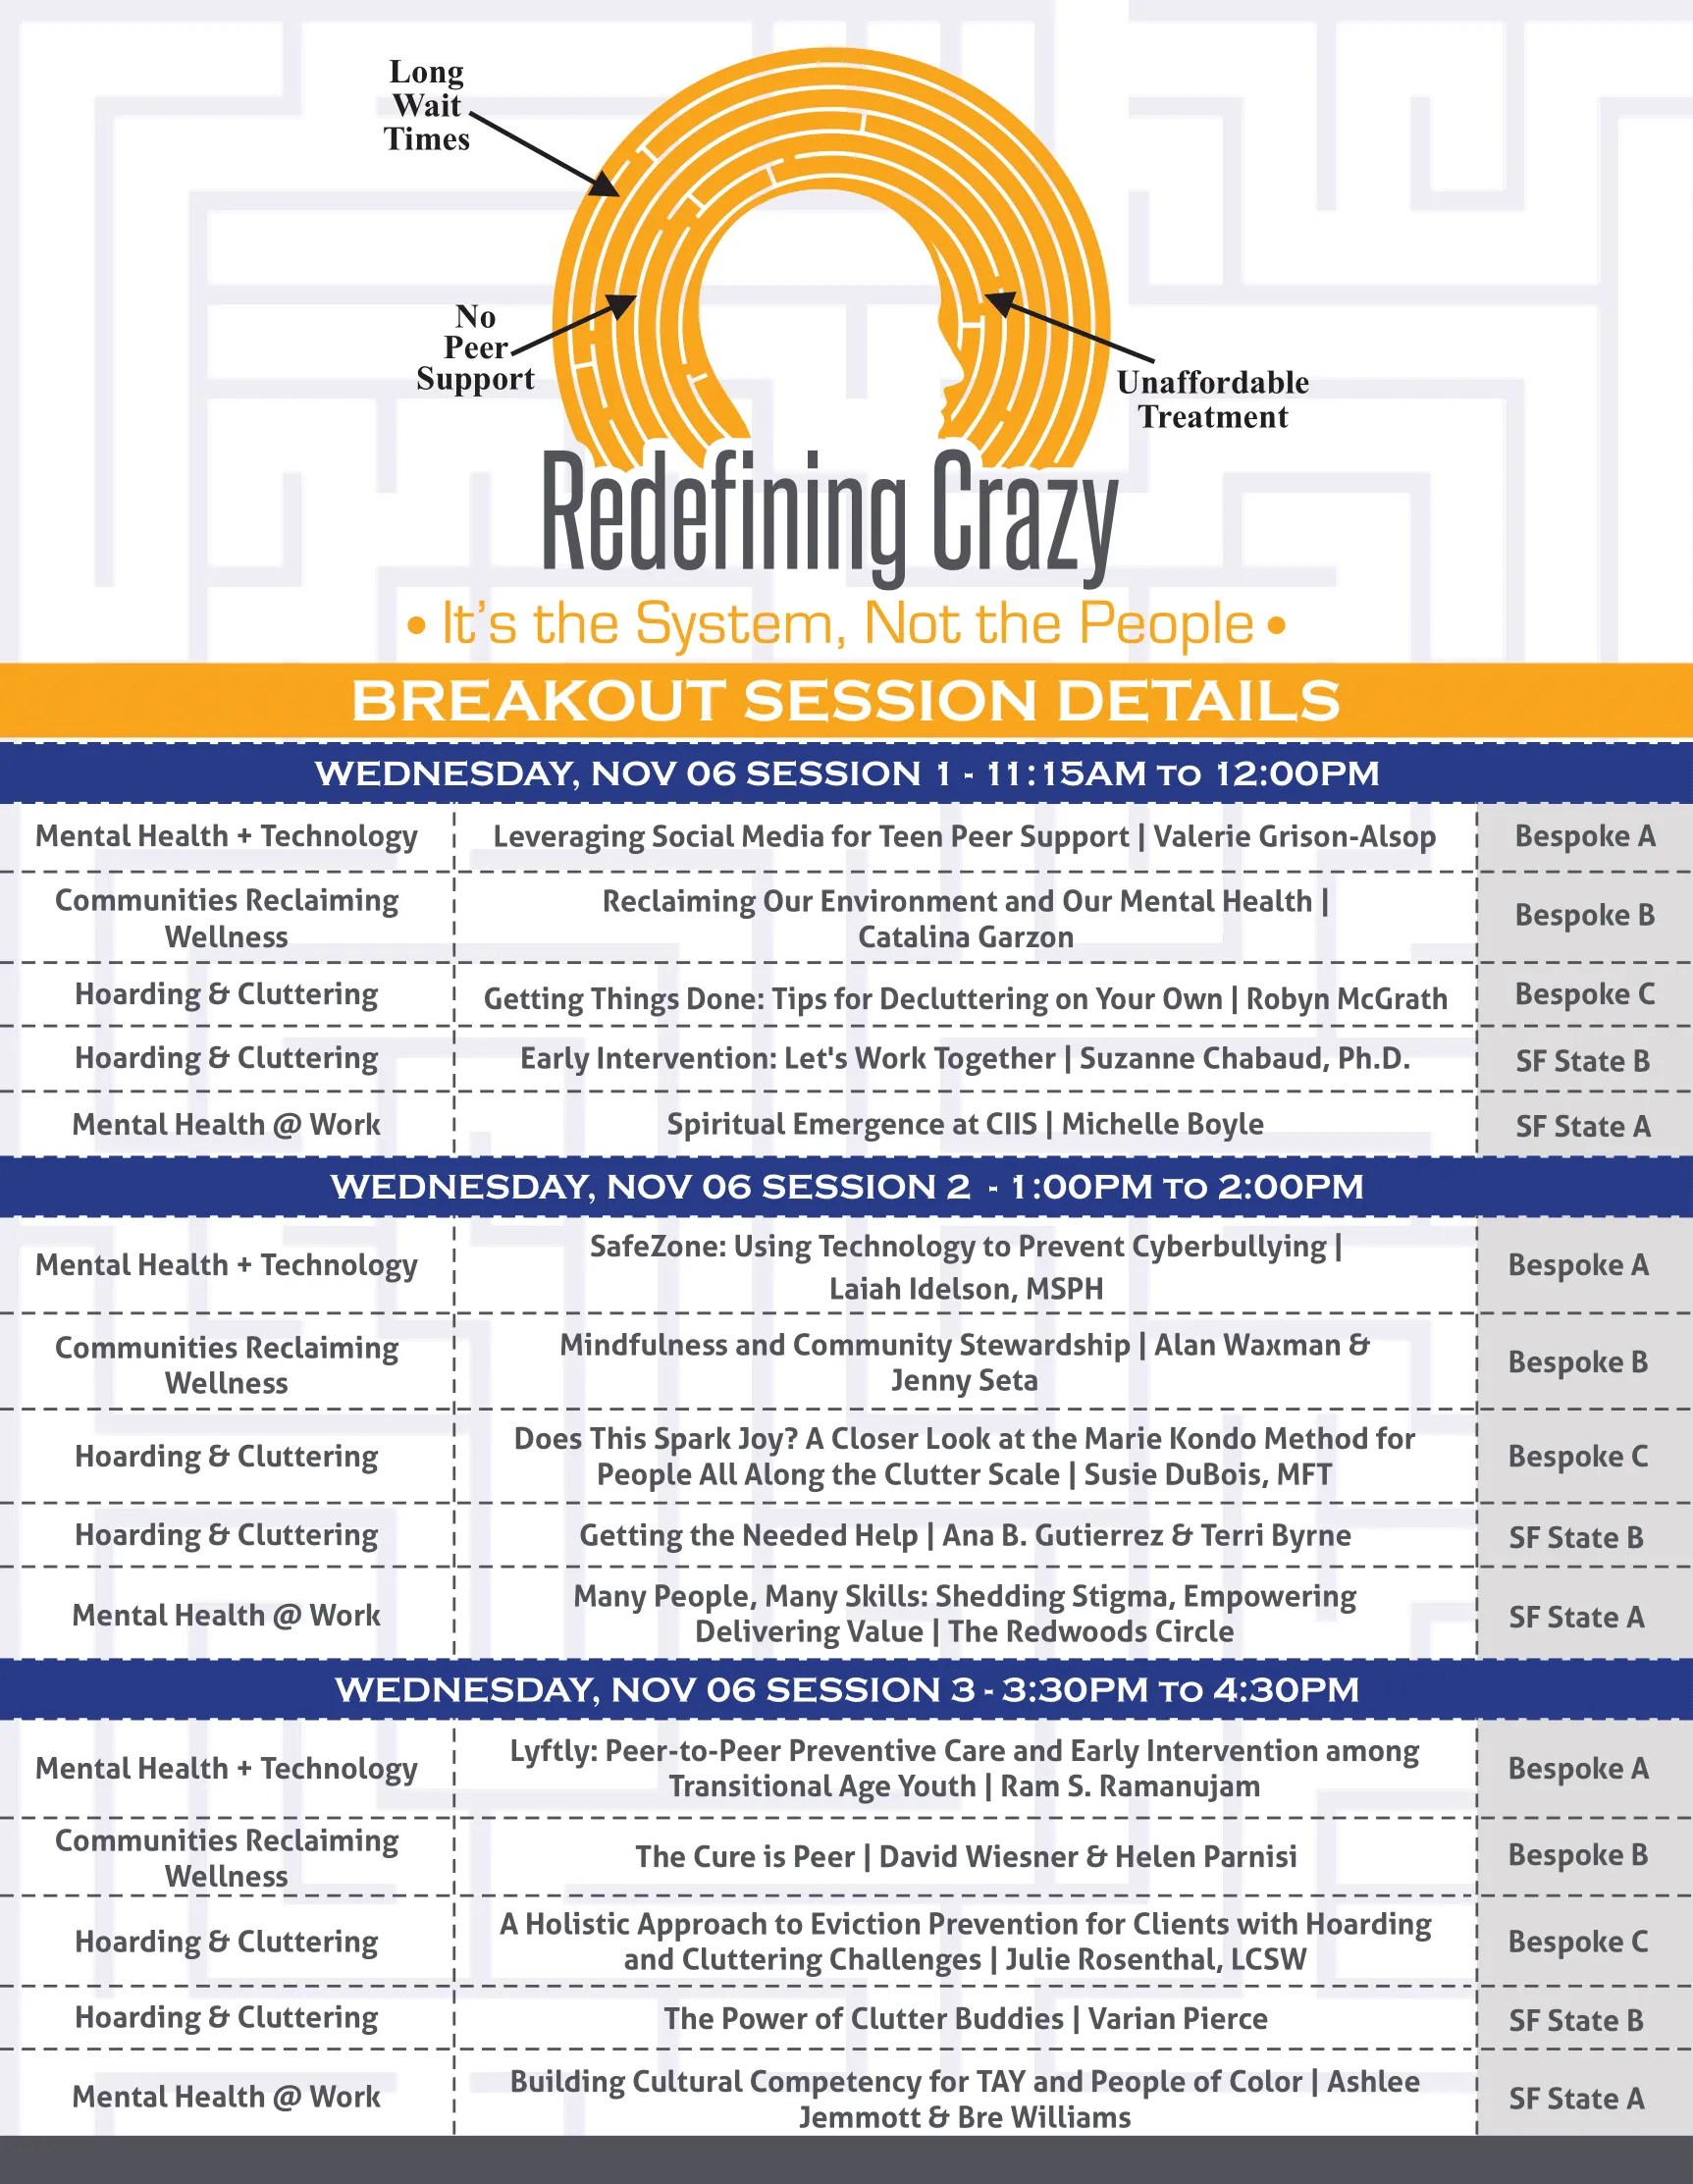 Redefining Crazy 2019 Session Schedule (1)-1